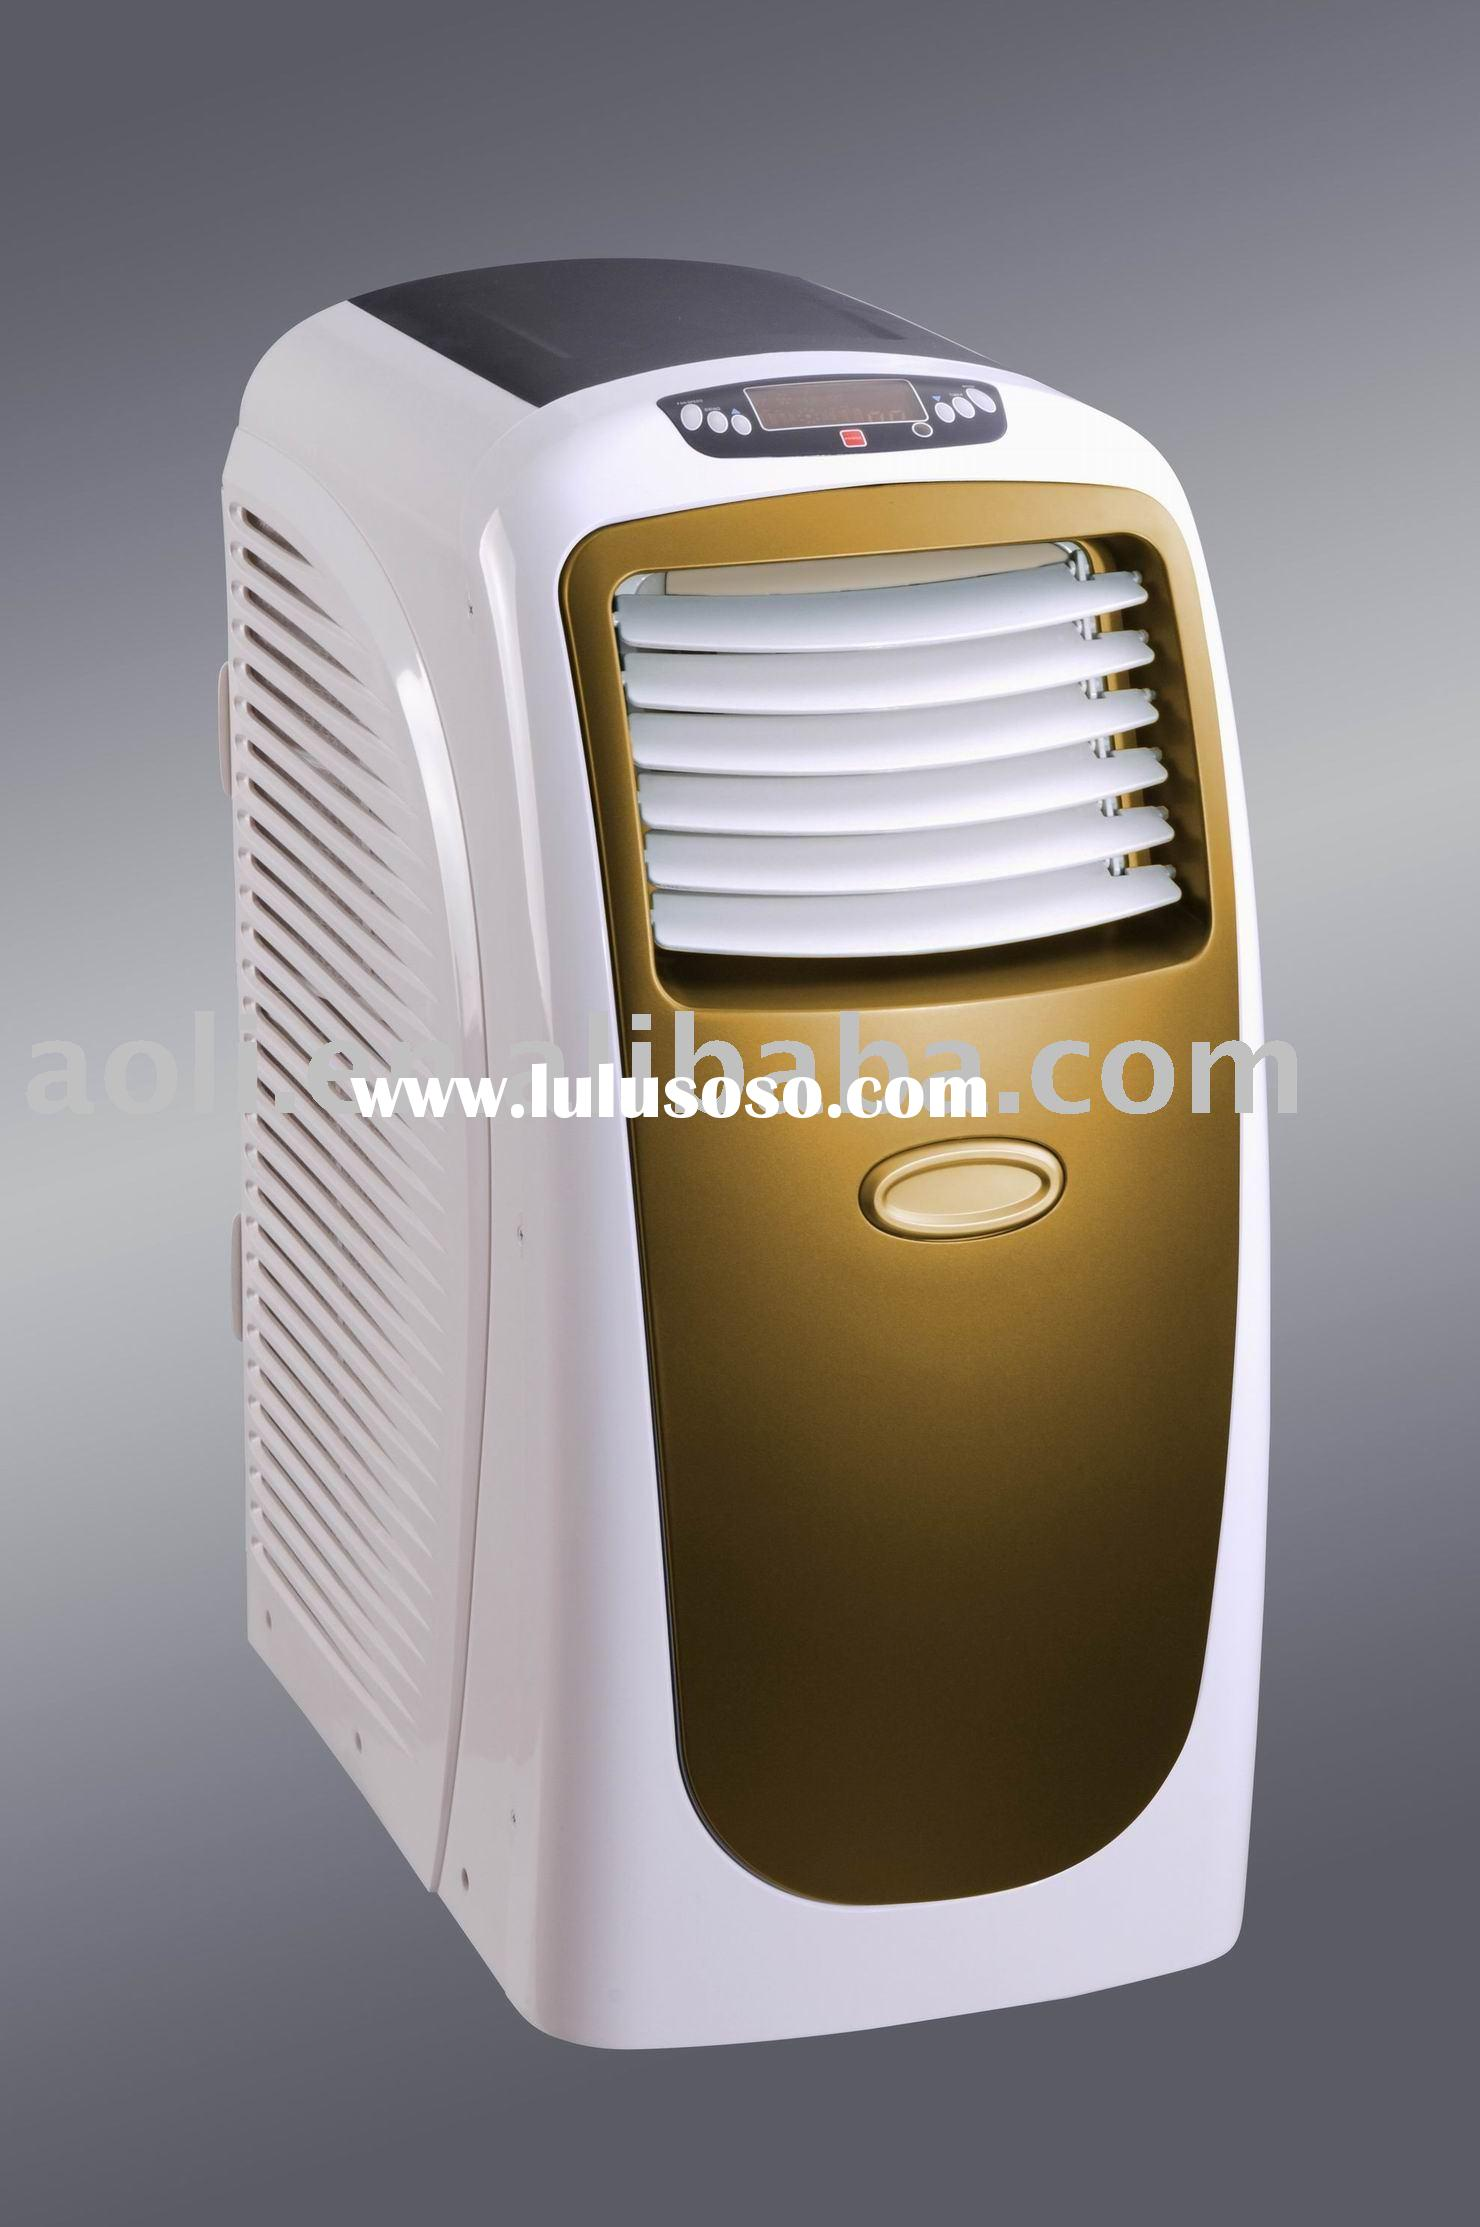 Panasonic Portable Air Conditioner Malaysia Panasonic